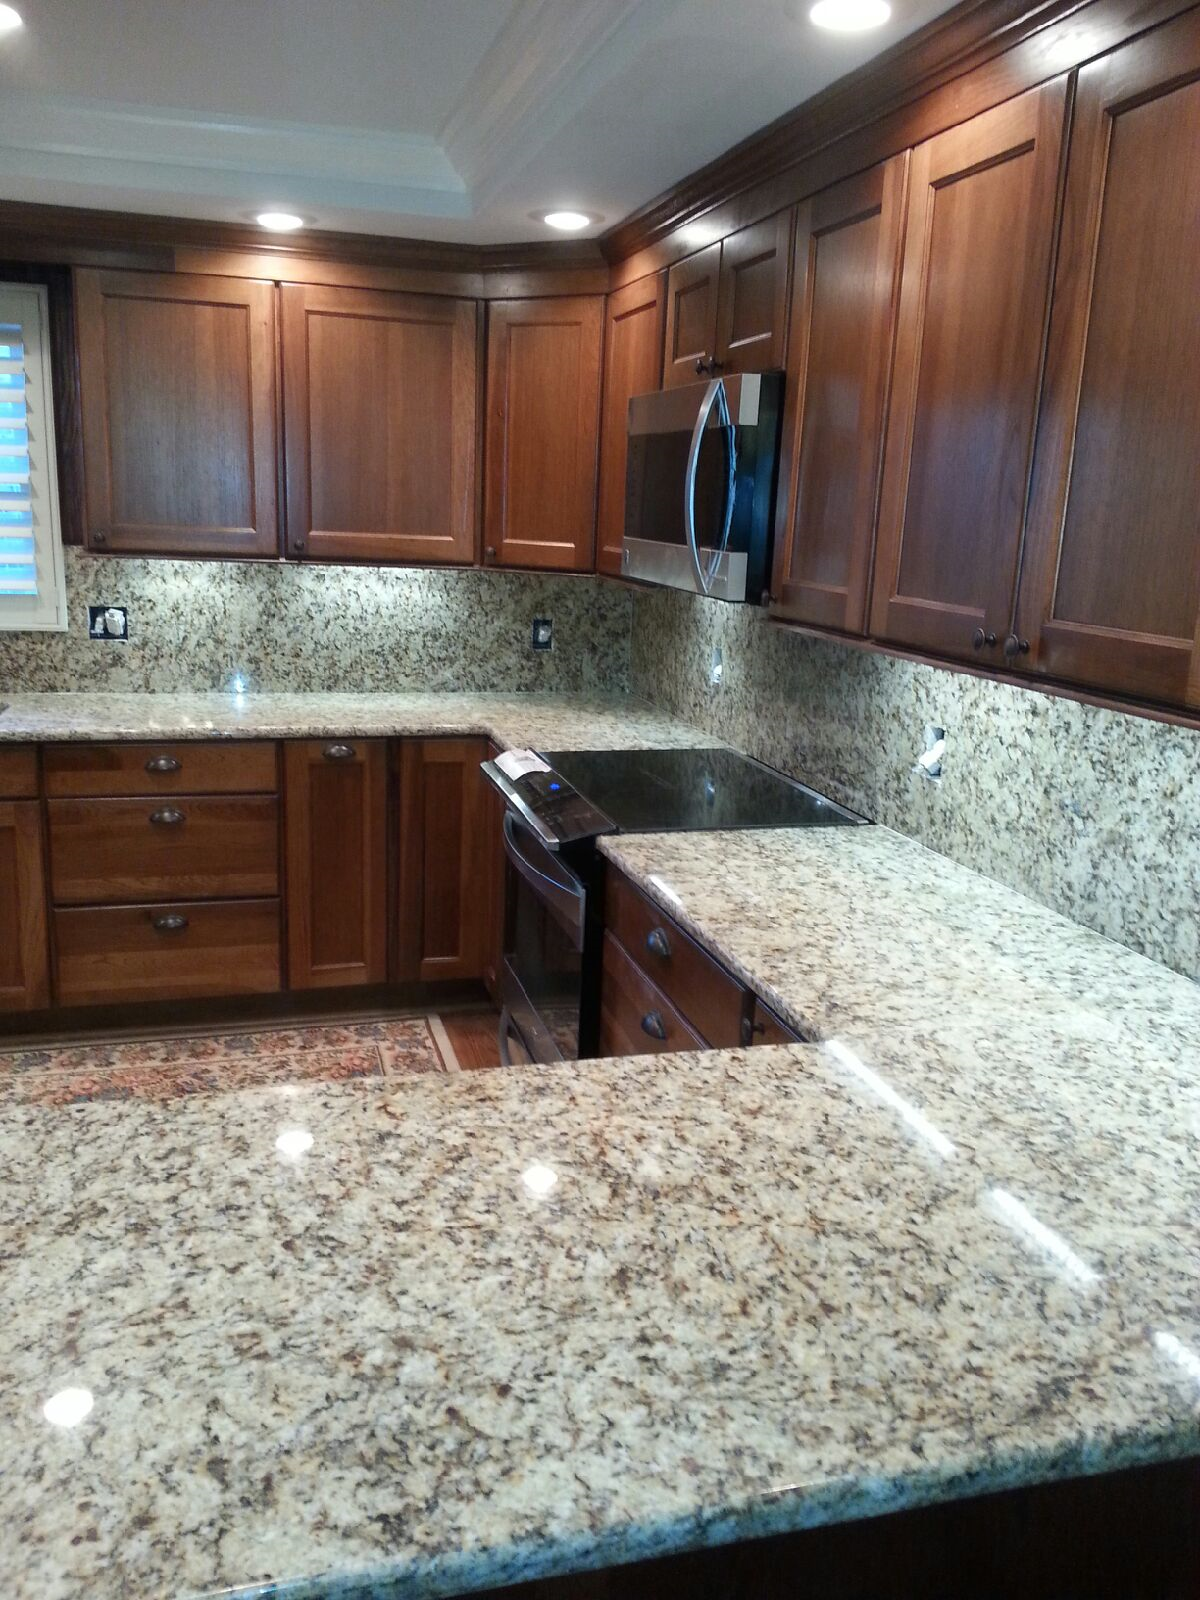 Granite Kitchen Countertops Cost Per Square Foot In India